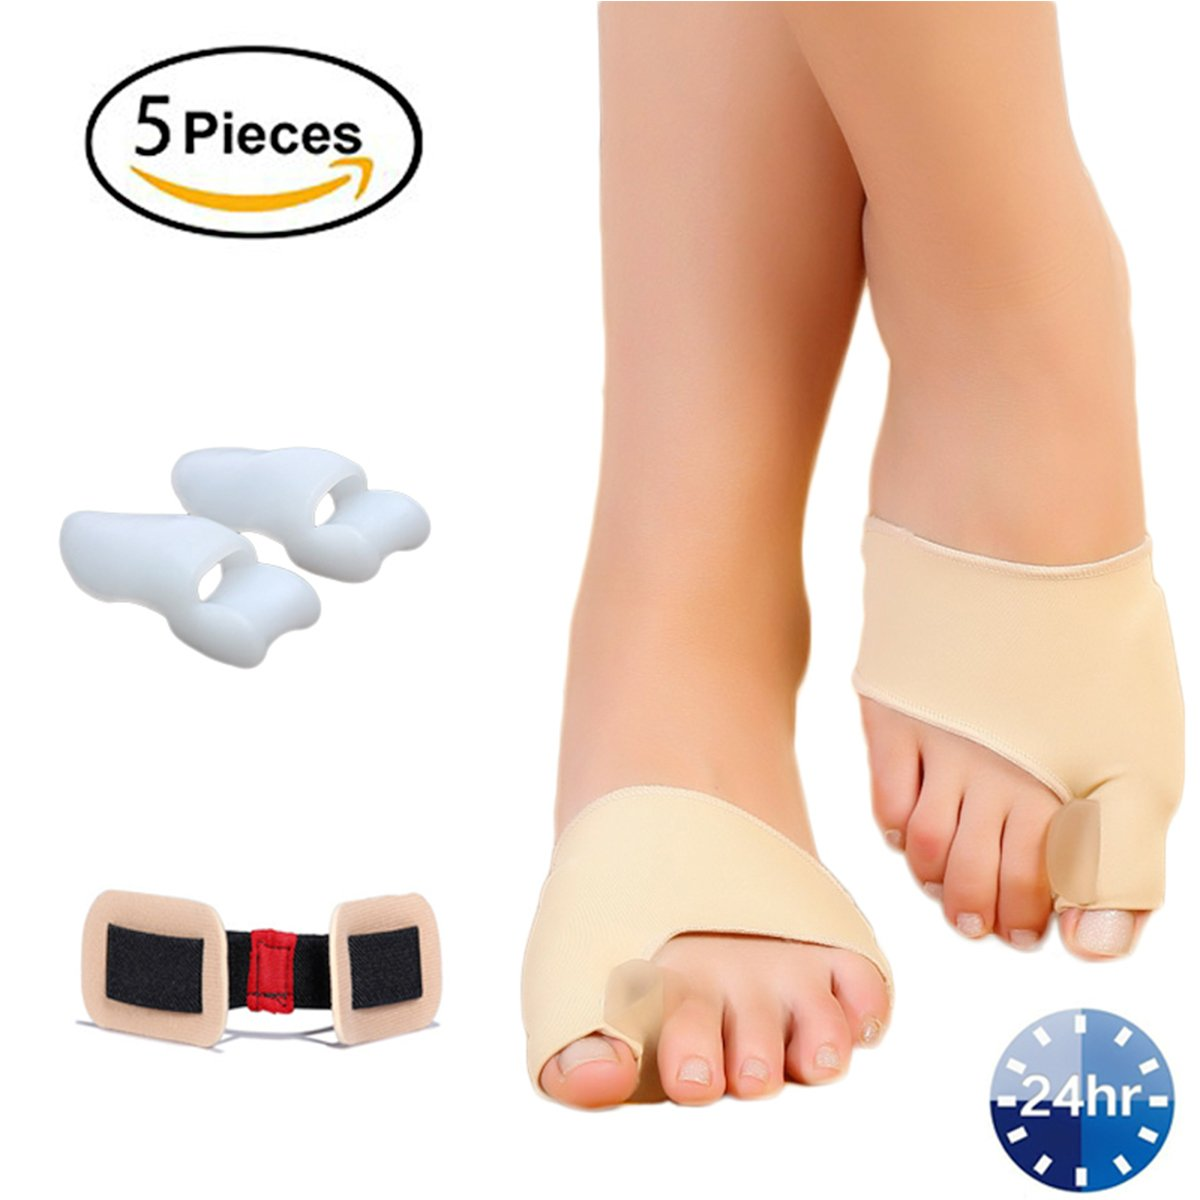 Bunion Corrector, Gel Bunion Relief Splint Protector Sleeve Kit for Women & Men, Orthopedic Bunion Brace Cushions Treat Hallux Valgus, Big Toe Joint and Hammer Toe to Relief Foot Pain